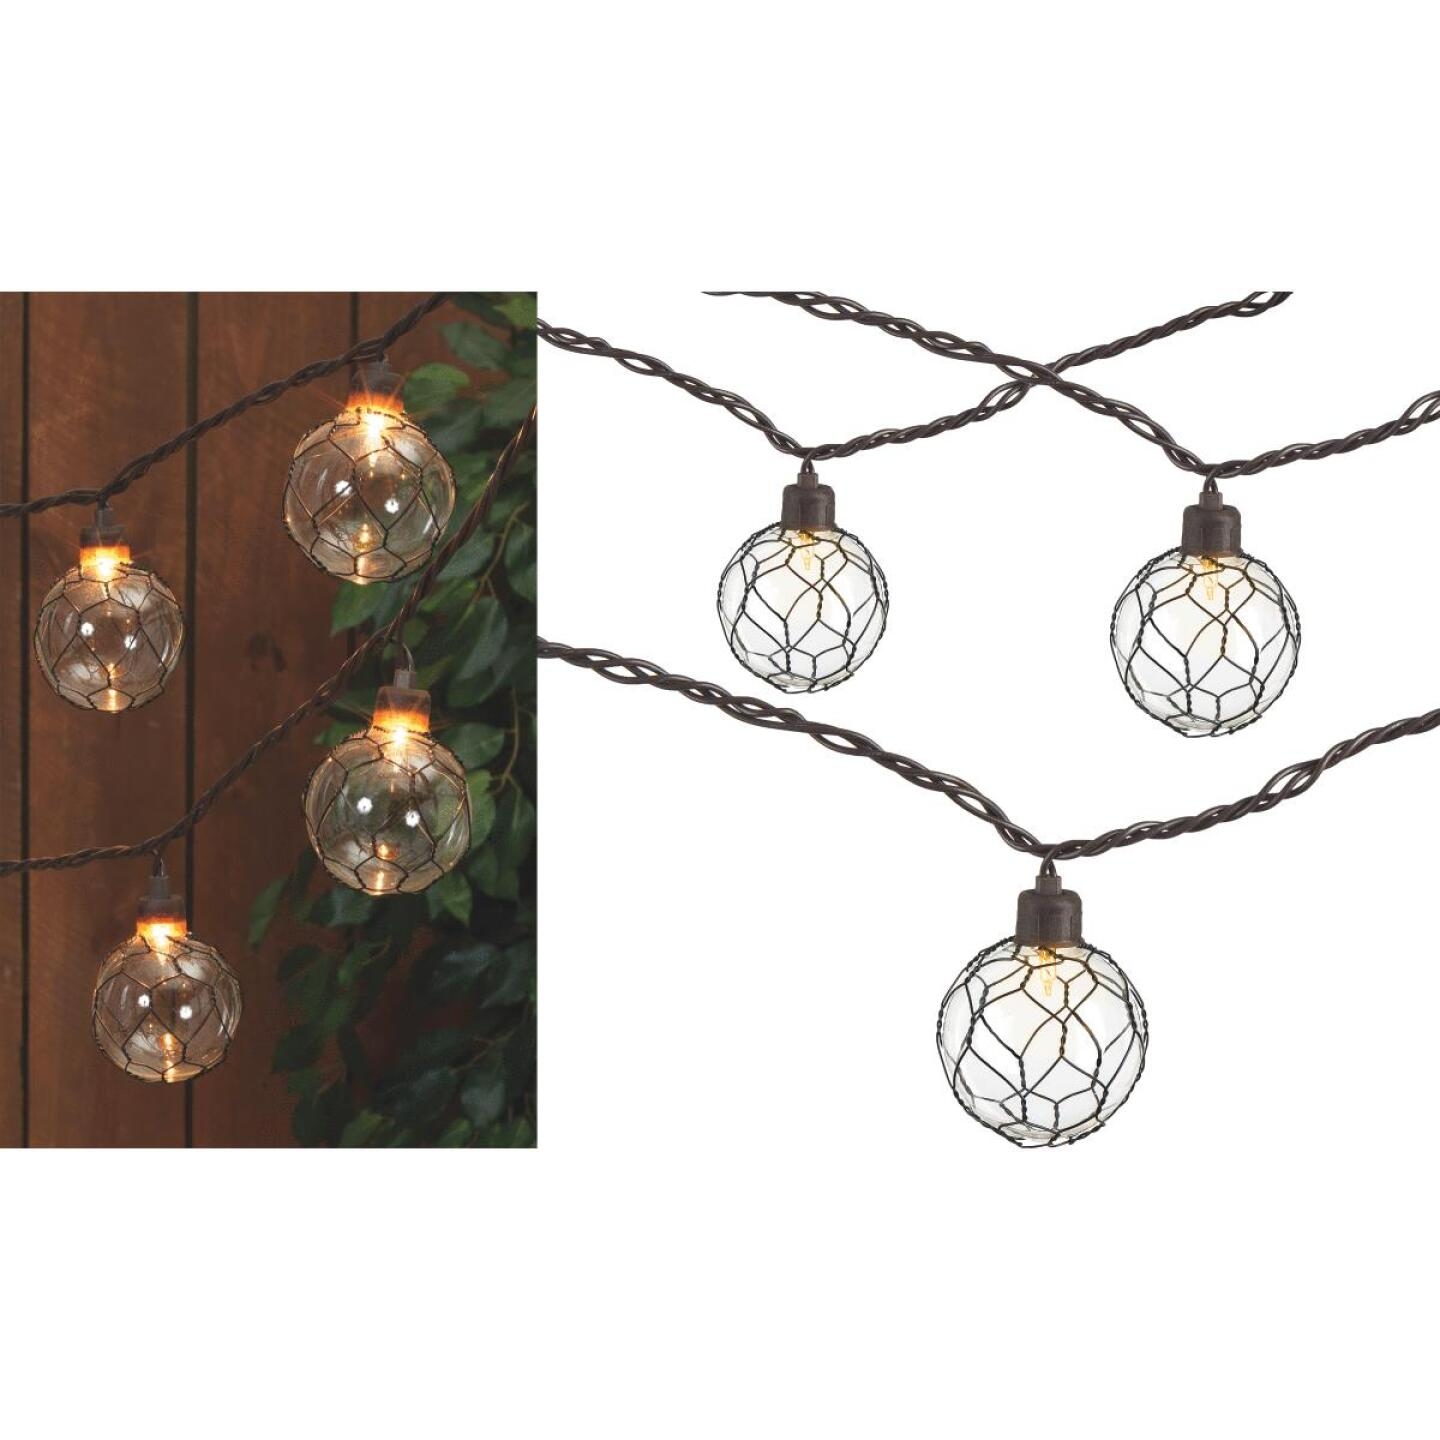 Gerson 8.5 Ft. 10-Light Clear Black Chicken Wire Globe String Lights Image 1